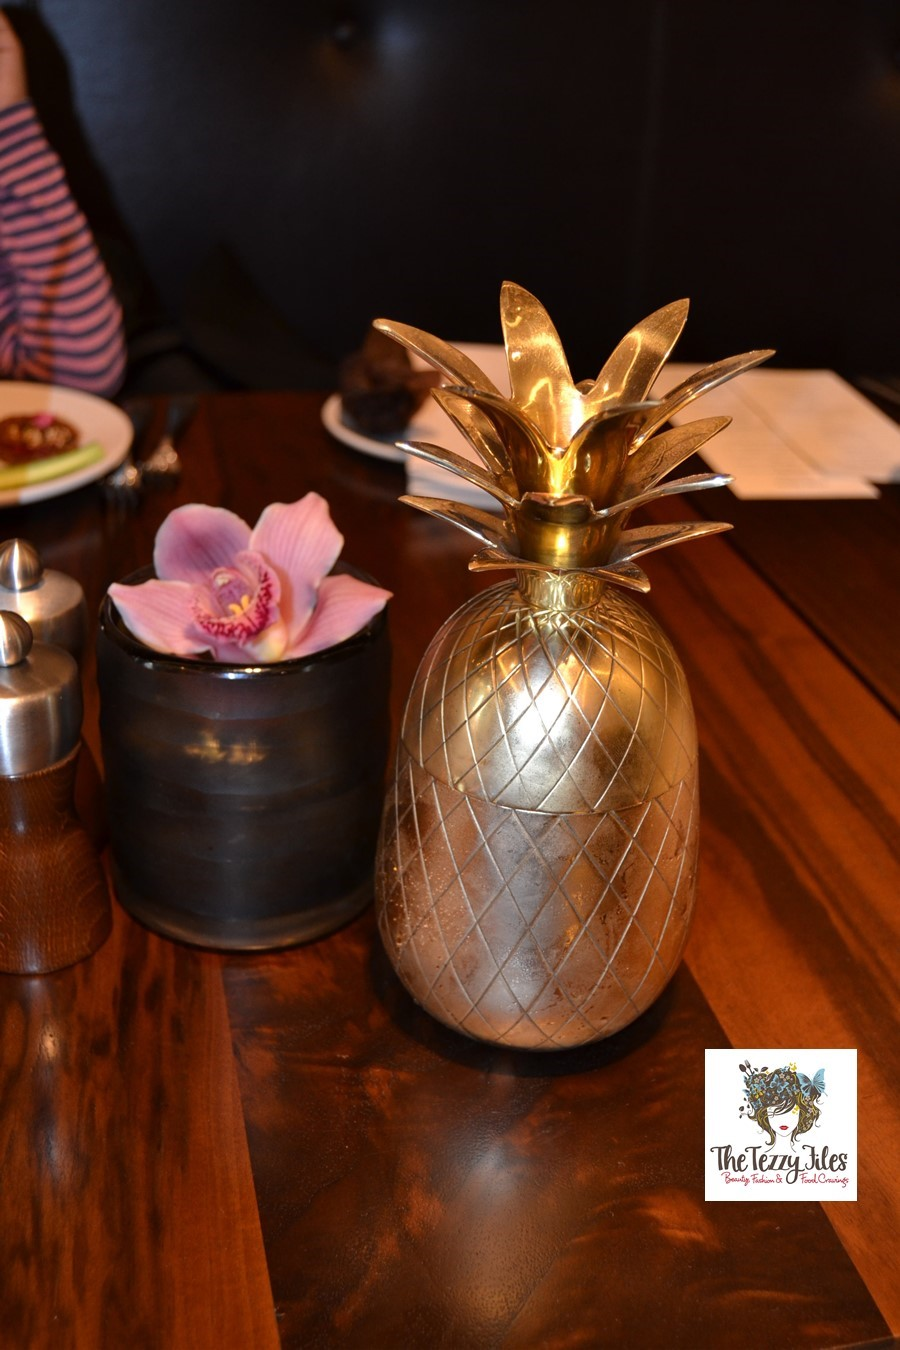 Boulevard Kitchen Manzil Downtown Dubai review on The Tezzy Files Dubai Food Blog (23)